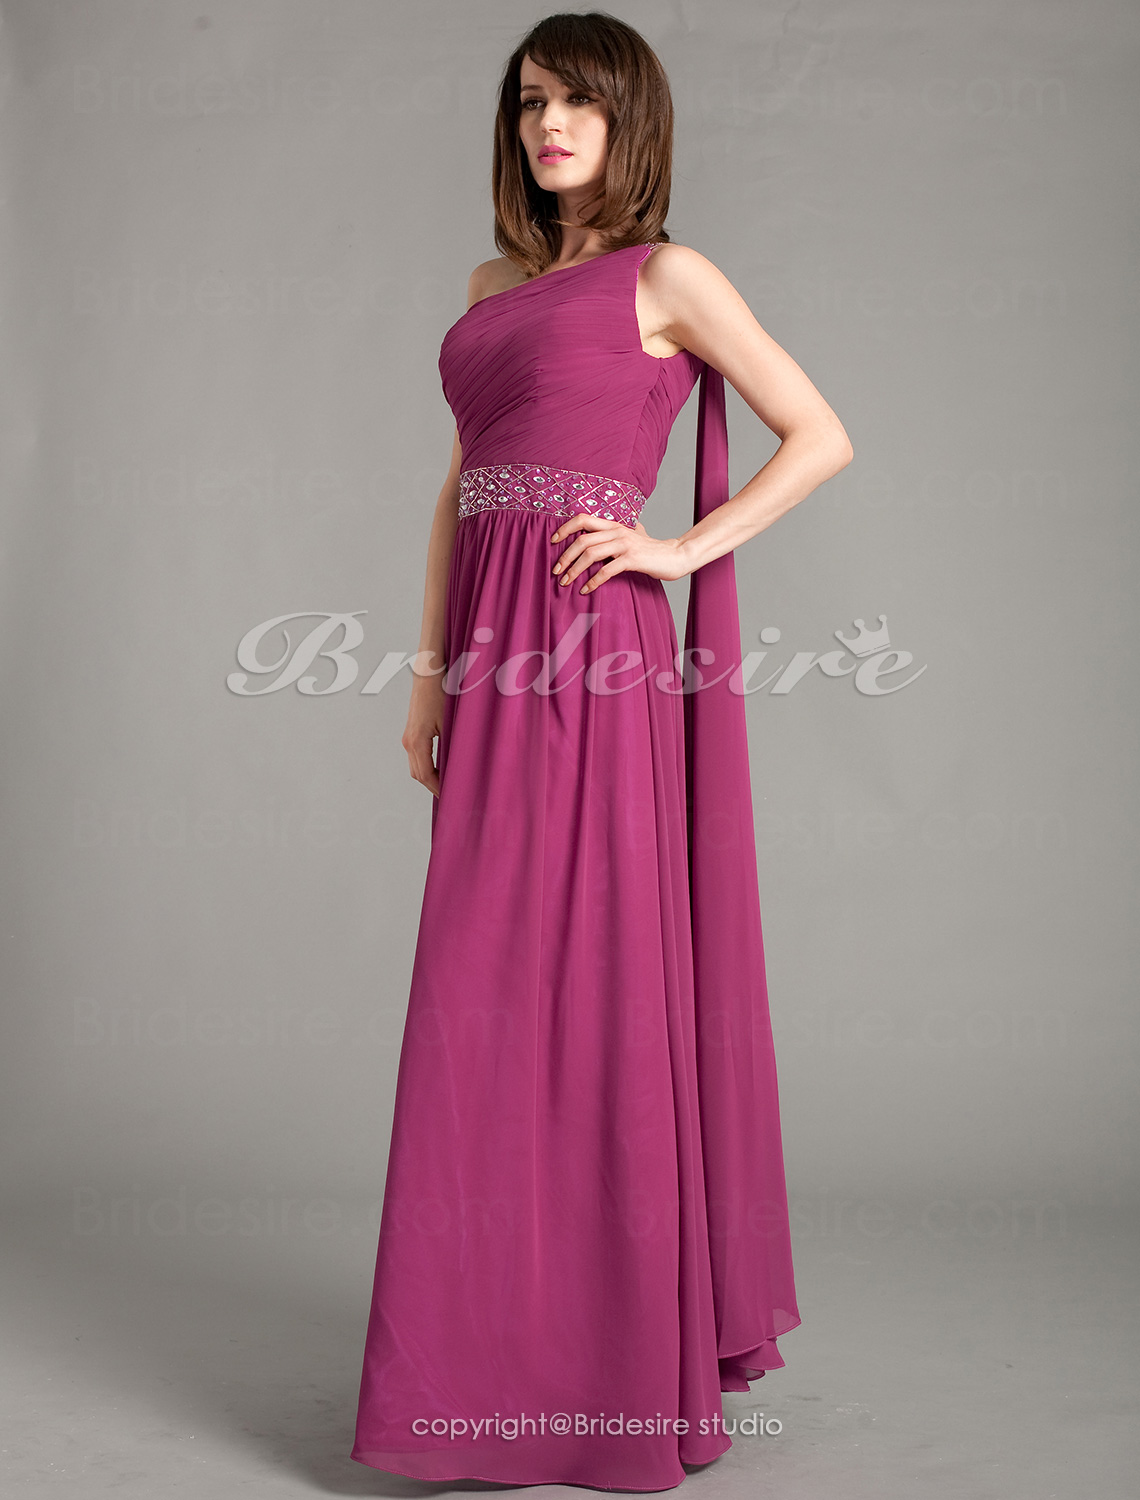 Sheath/Column Chiffon Watteau Train One Shoulder Evening Dress With Side Draping